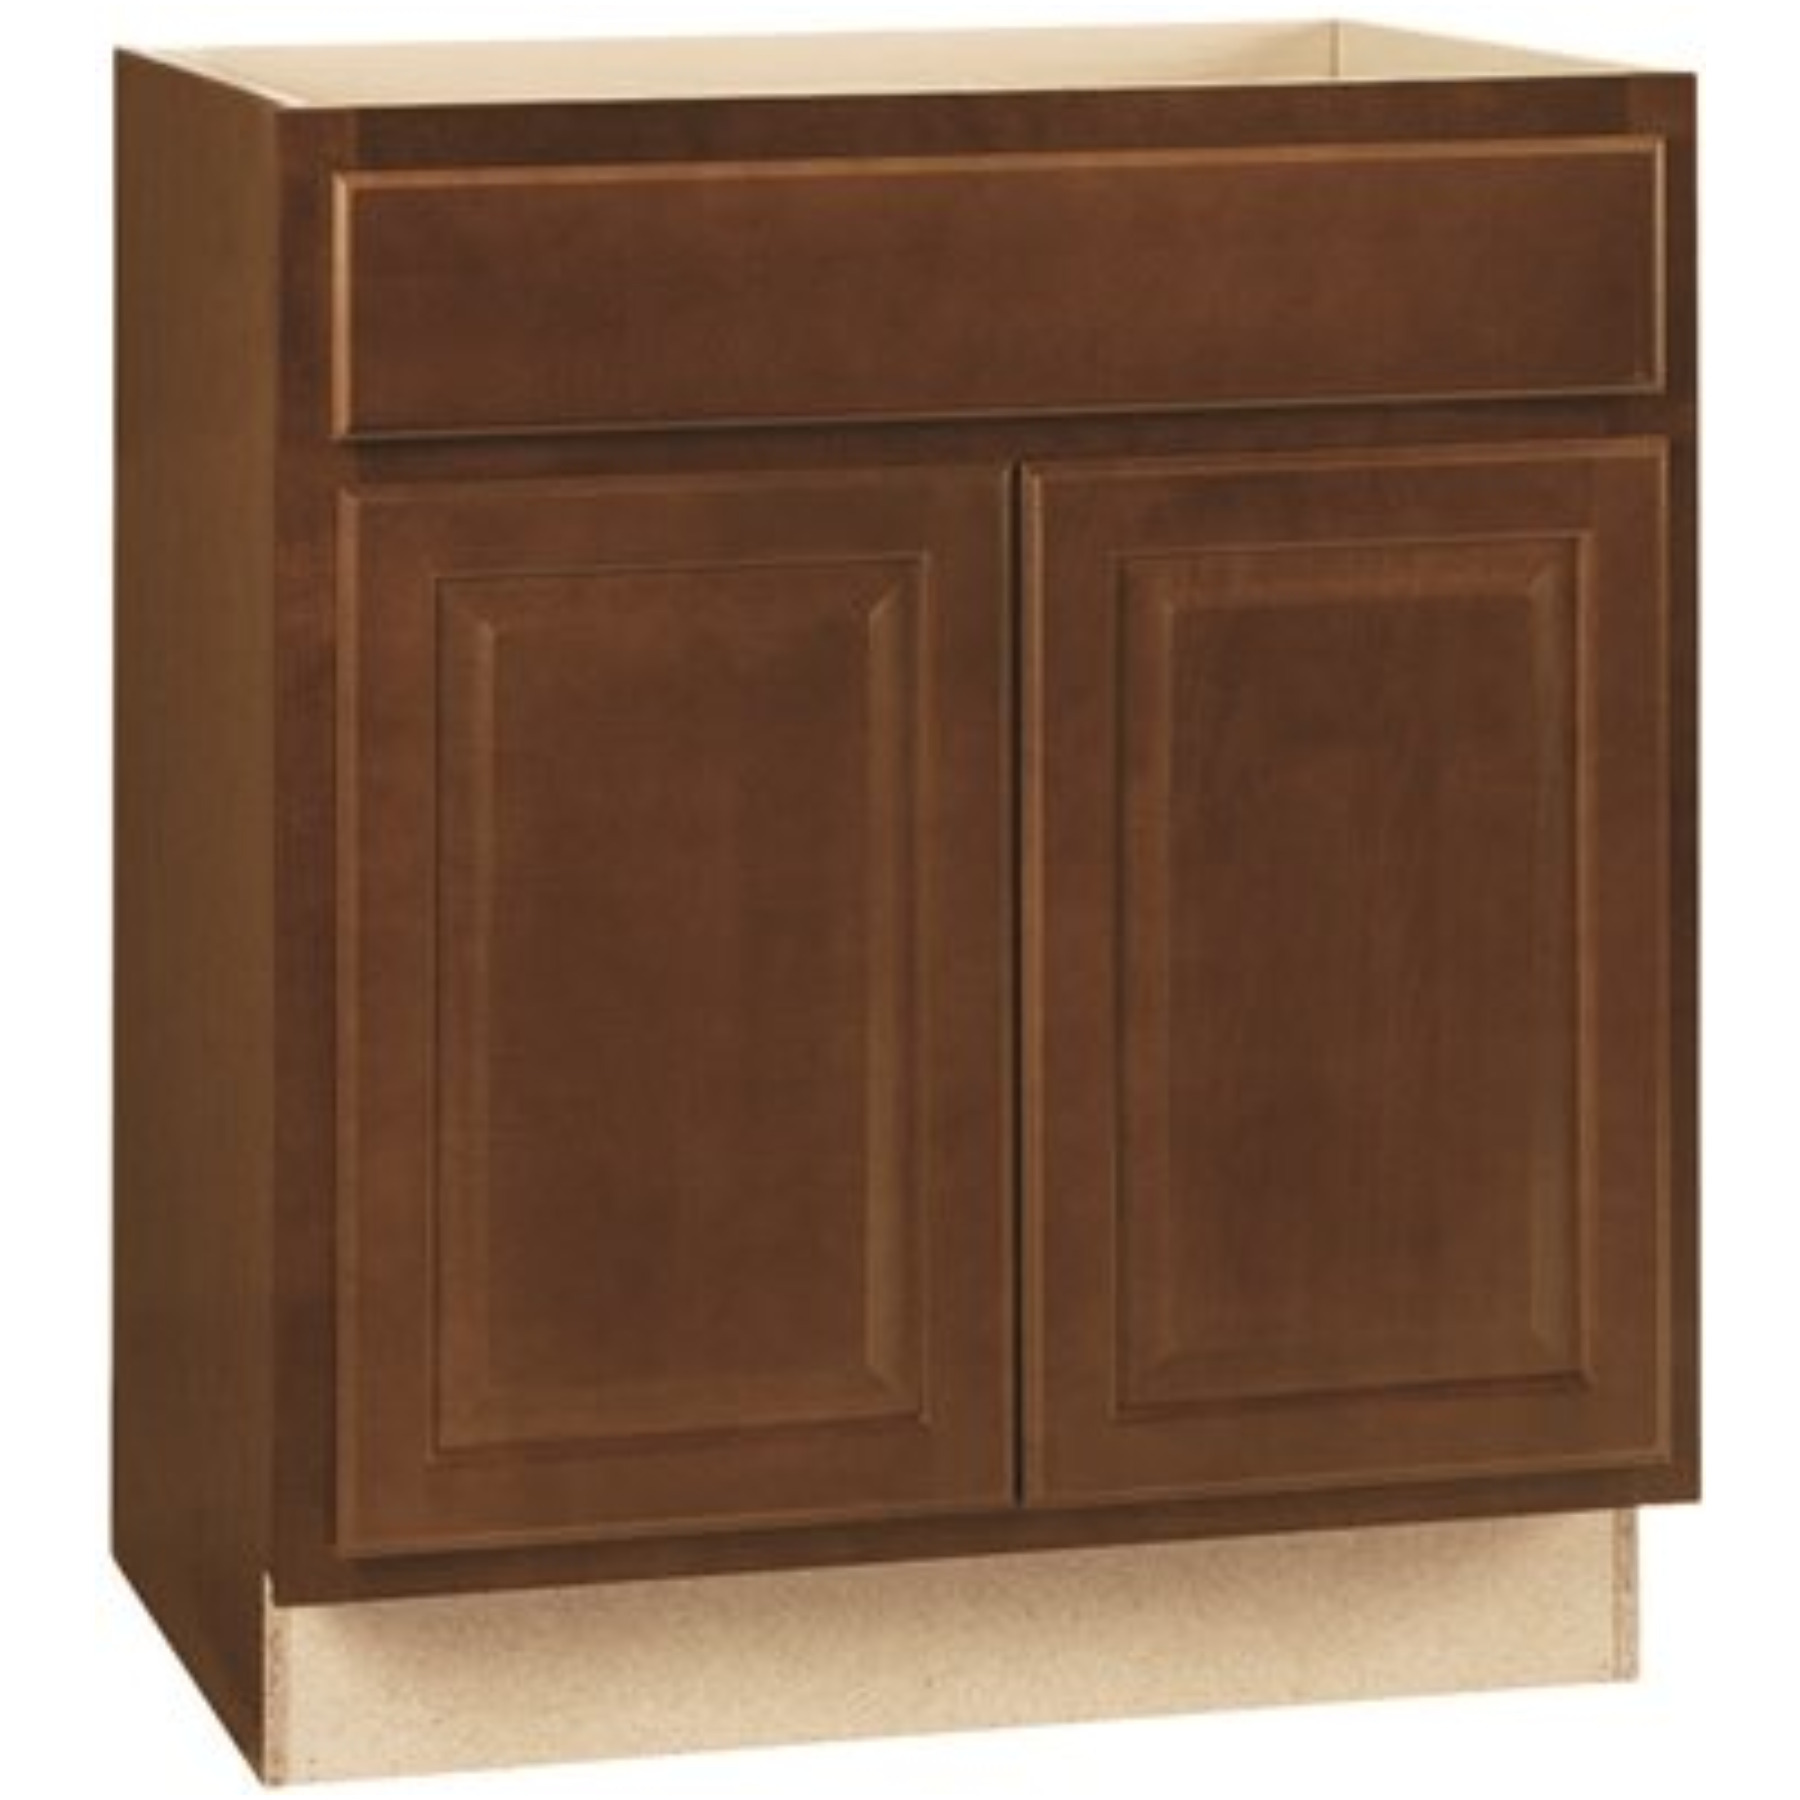 RSI HOME PRODUCTS HAMILTON BASE CABINET, FULLY ASSEMBLED, RAISED PANEL, CAFE, 30X34-1/2X24 IN.